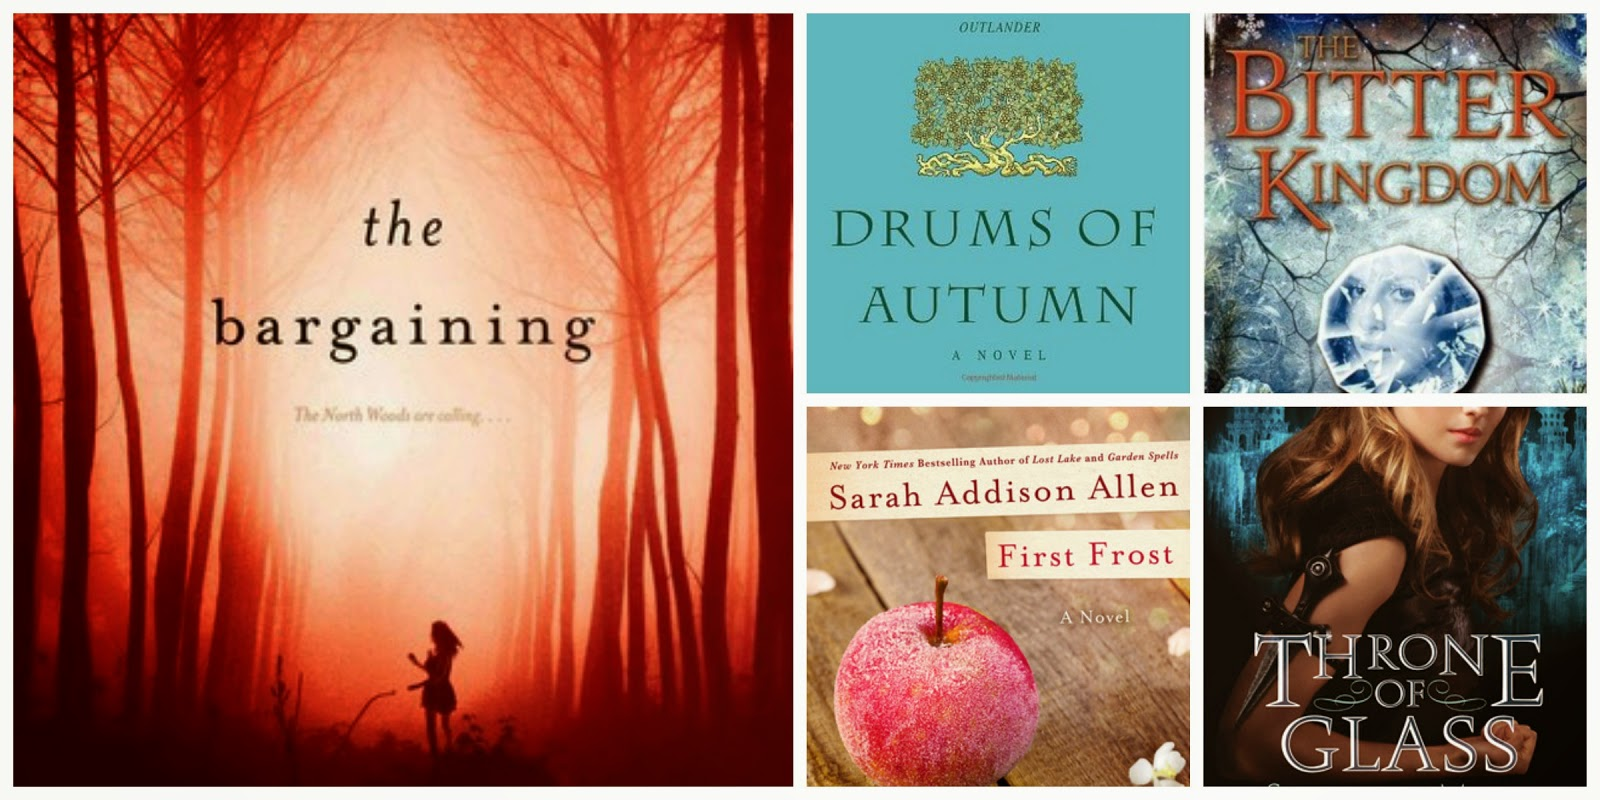 7 Drums Of Autumn (outlander #4) By Diana Gabaldon 8 The Bitter Kingdom ( Fire And Thorns #3) By Rae Carson 9 First Frost By Sarah Addison Allen